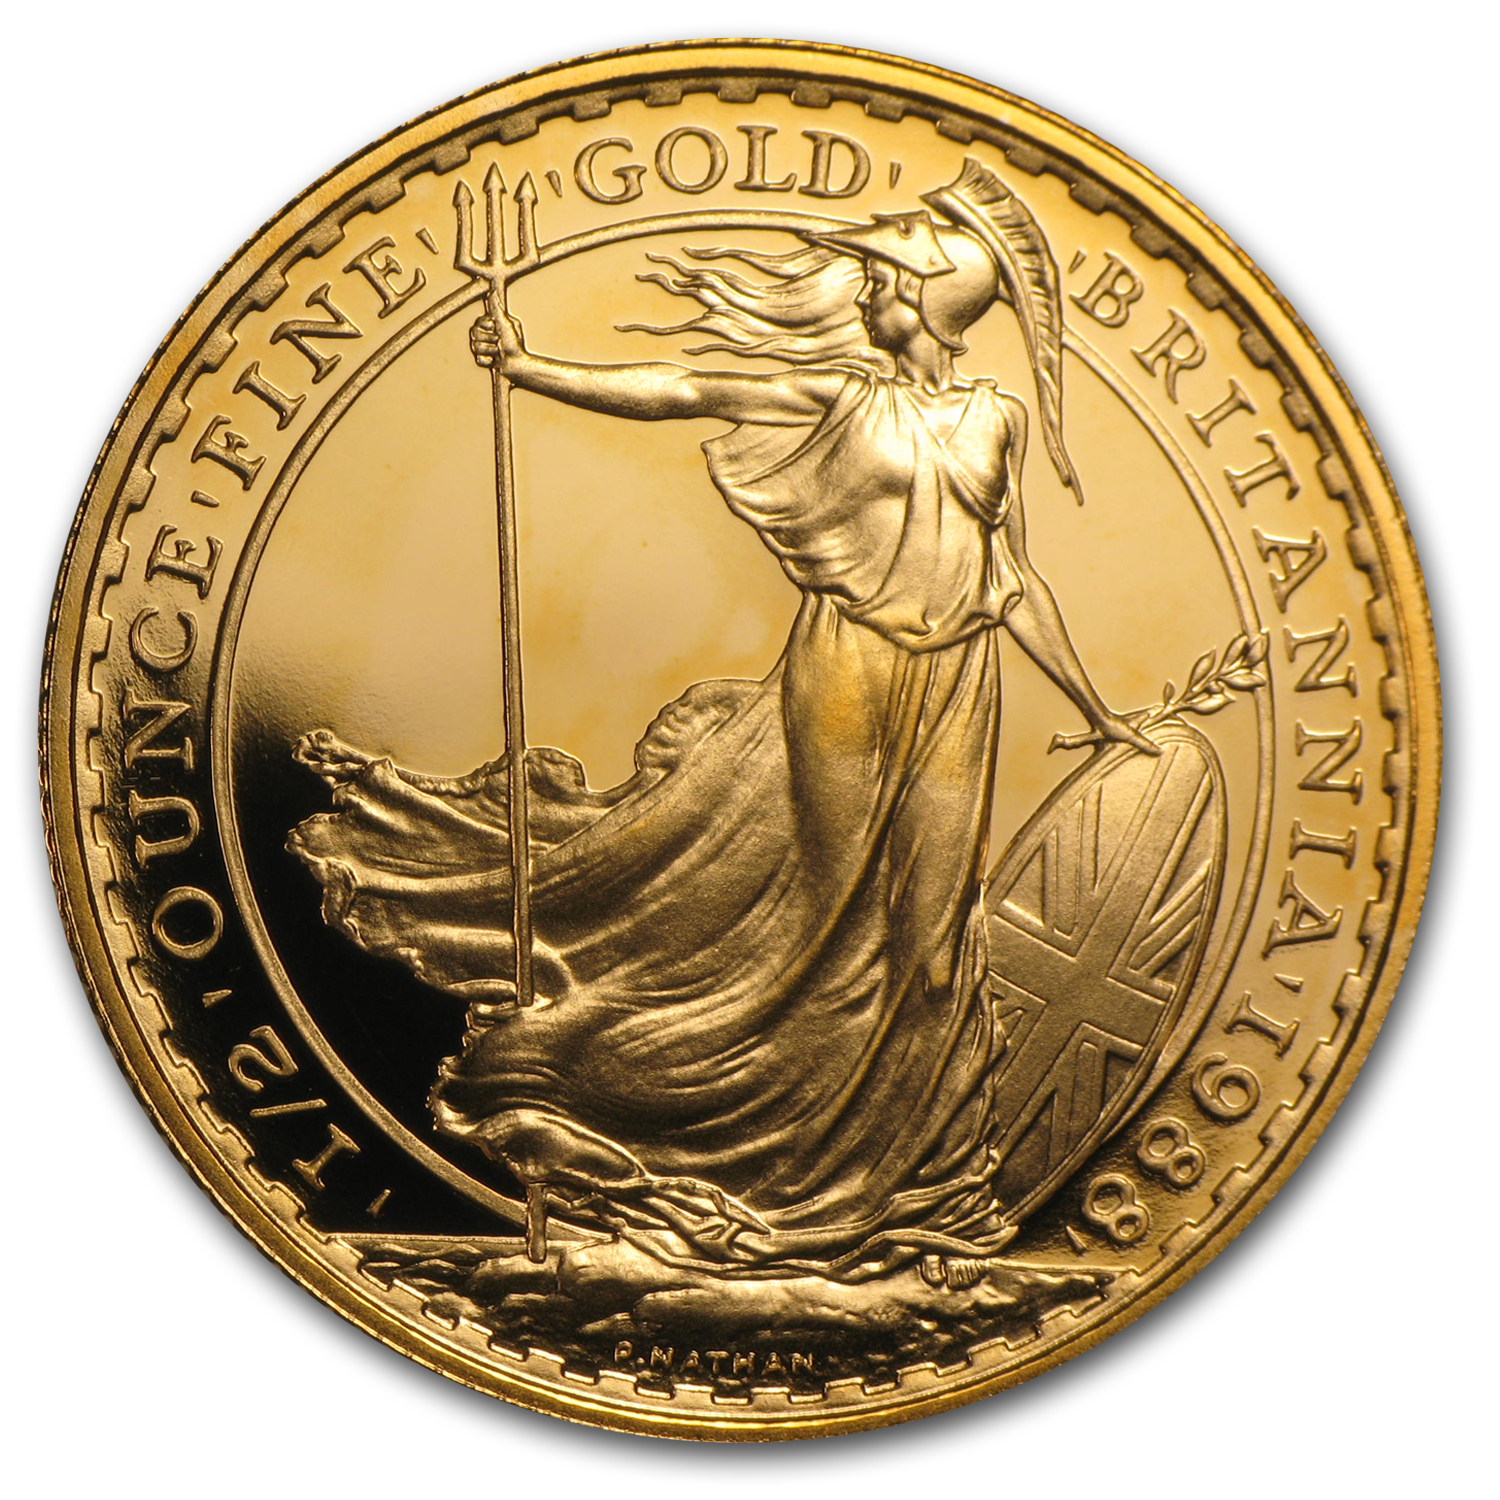 1988 1/2 oz Proof Gold Britannia